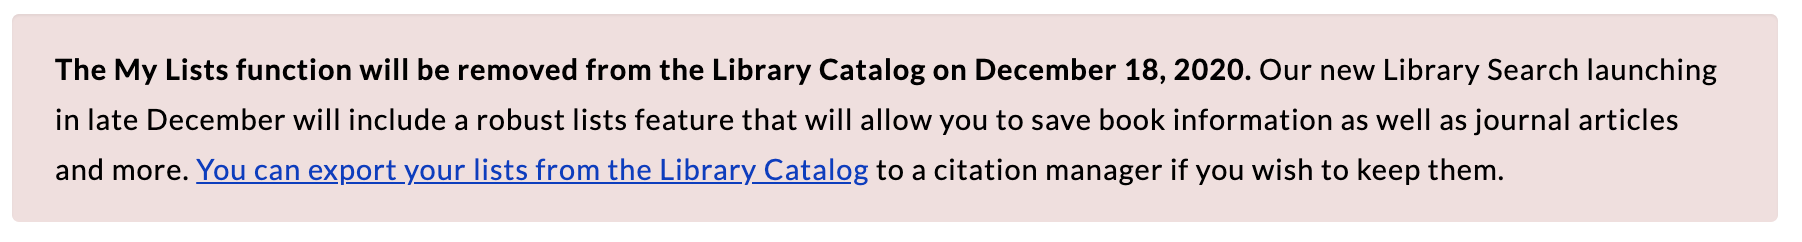 Banner alerting users that the My Lists feature will be disabled on December 18th